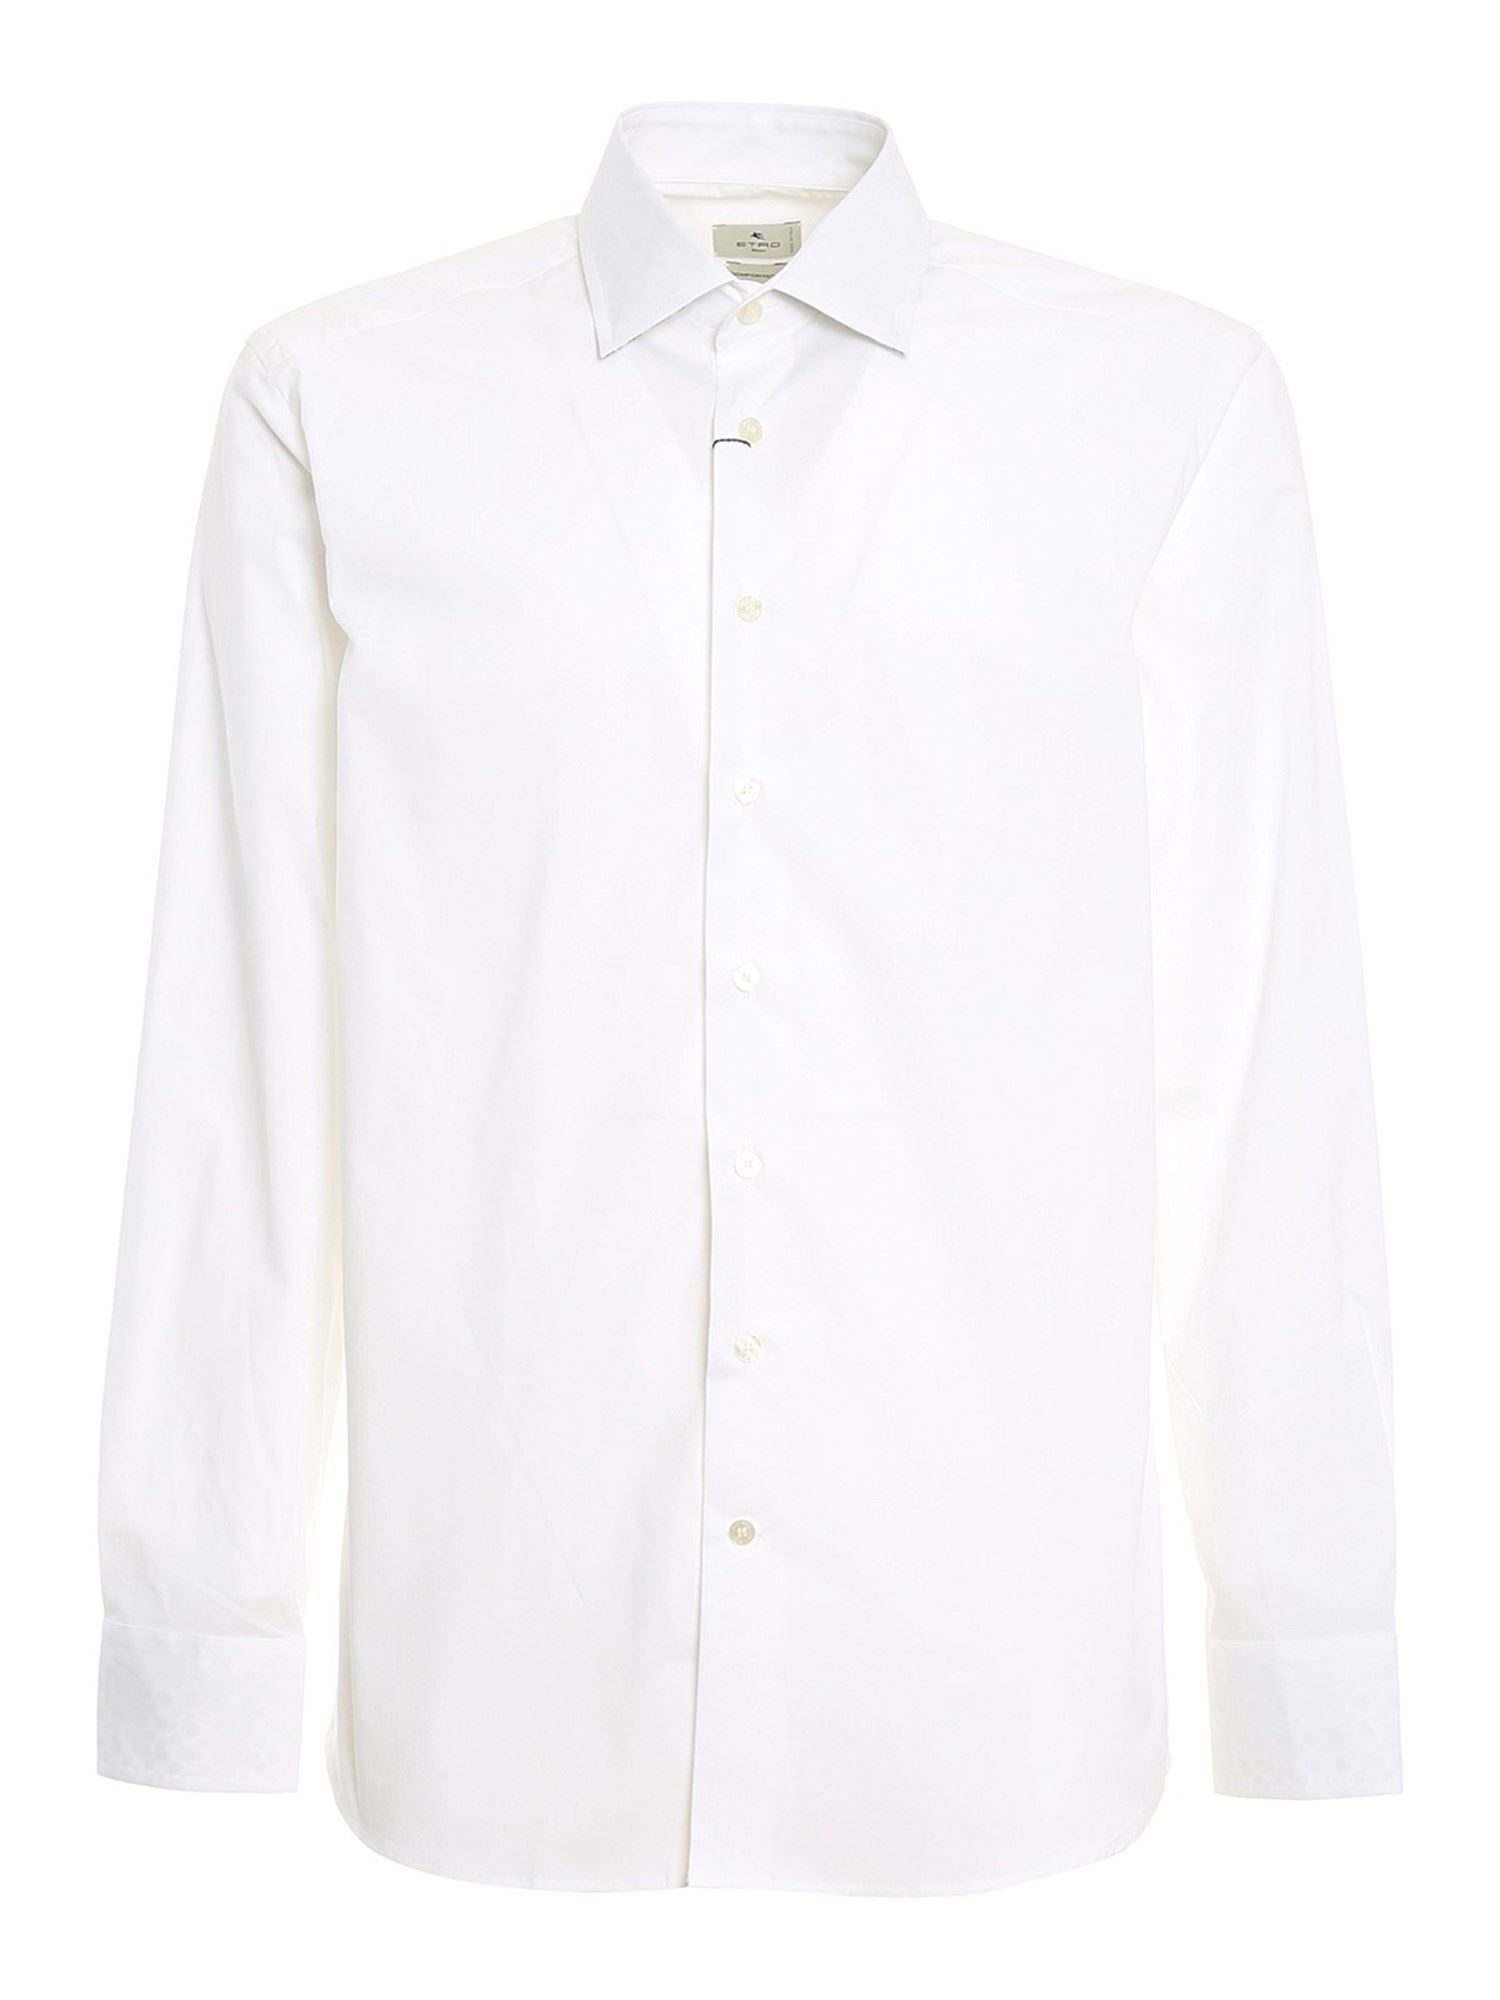 Etro COTTON POPLIN SHIRT IN WHITE